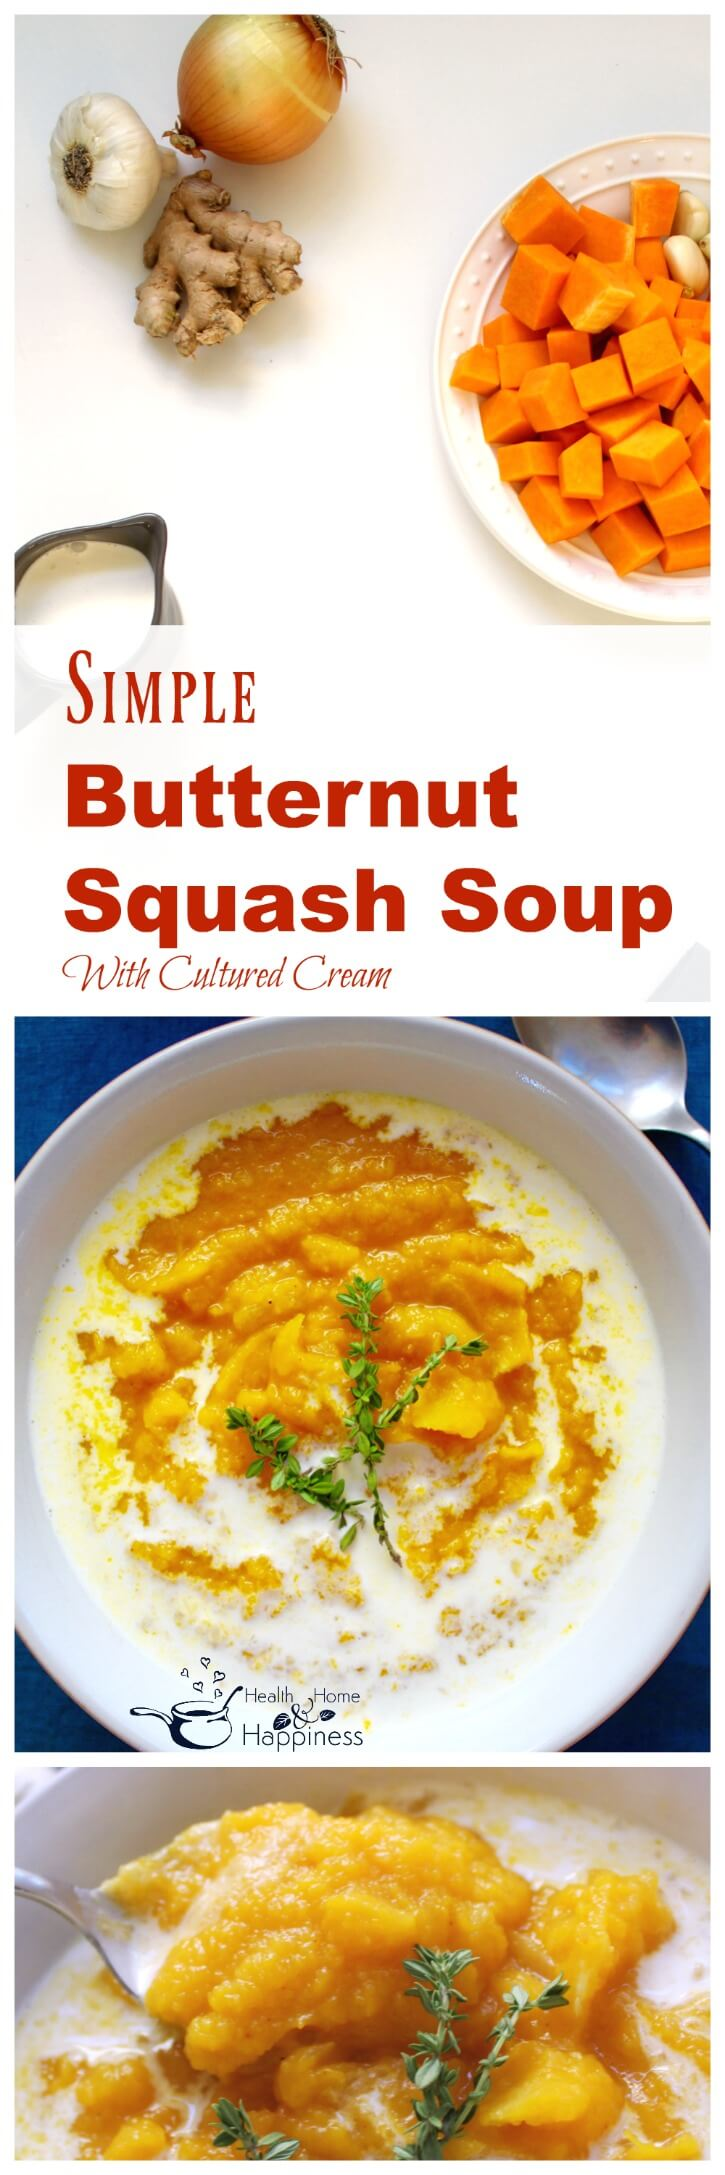 simple-butternut-squash-soup-yum